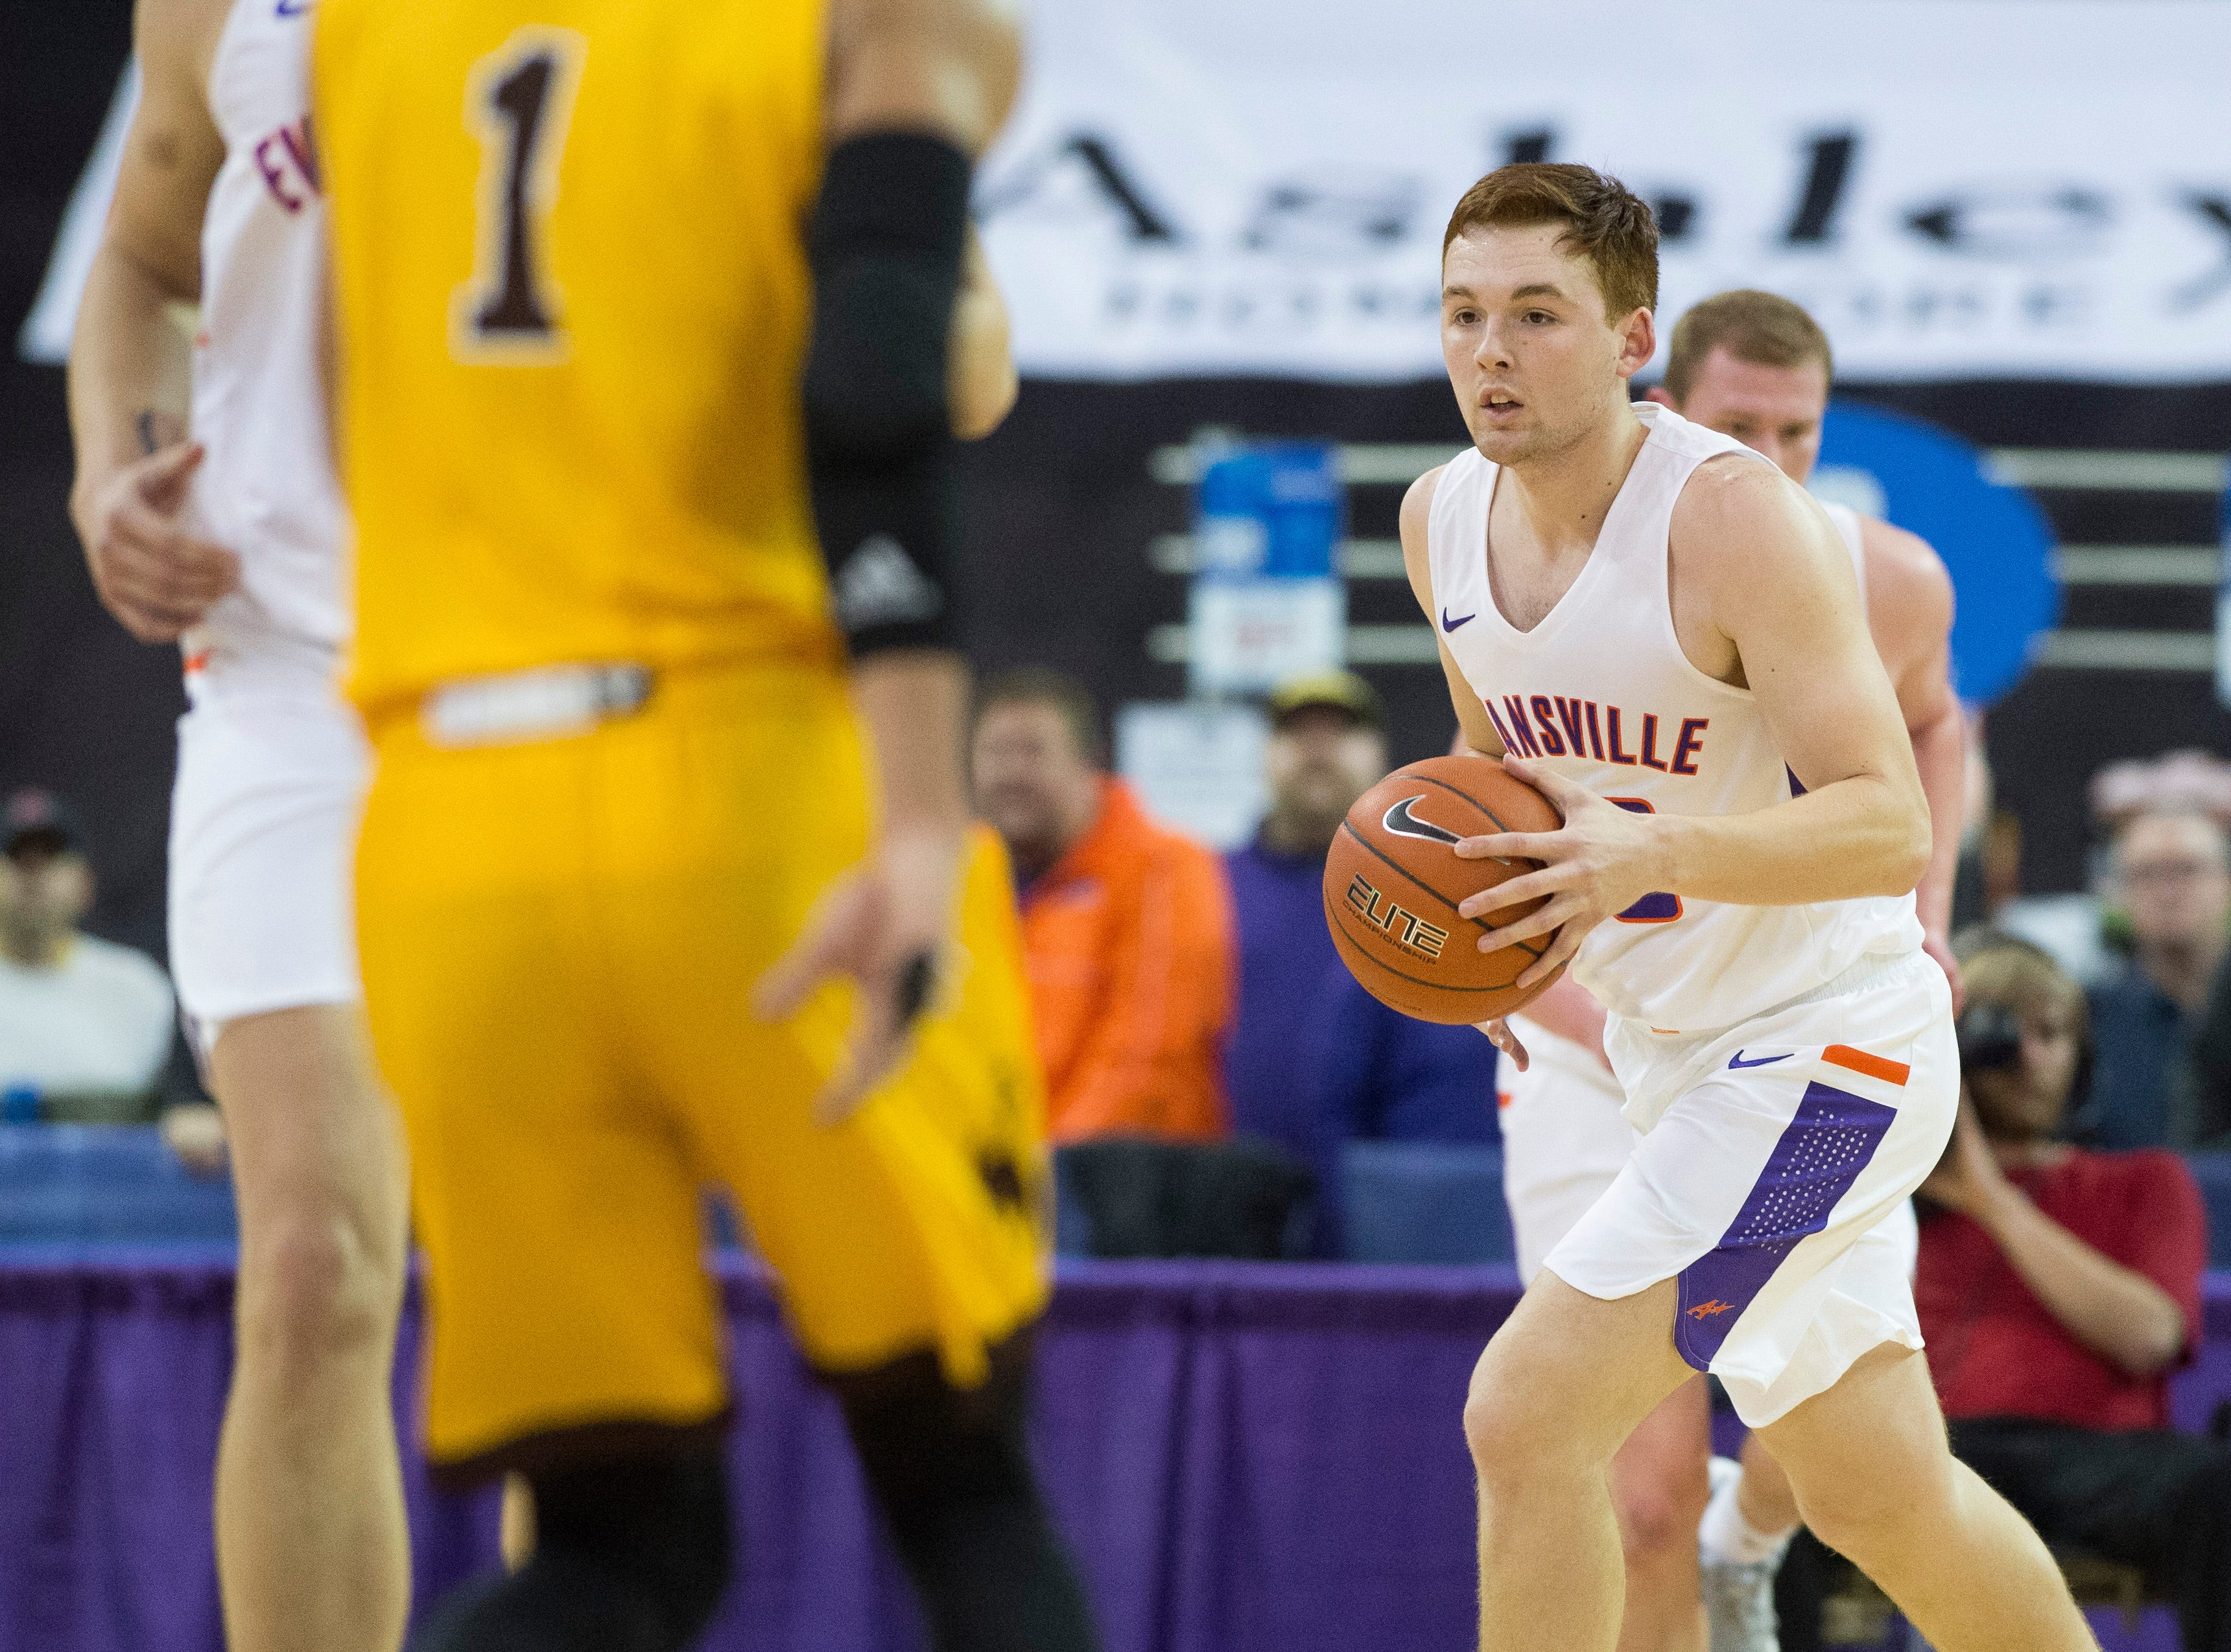 UE's Noah Frederking (30) looks for an open teammate during the UE vs Wyoming game at the Ford Center Wednesday, Nov. 28, 2018. UE won 86-76.